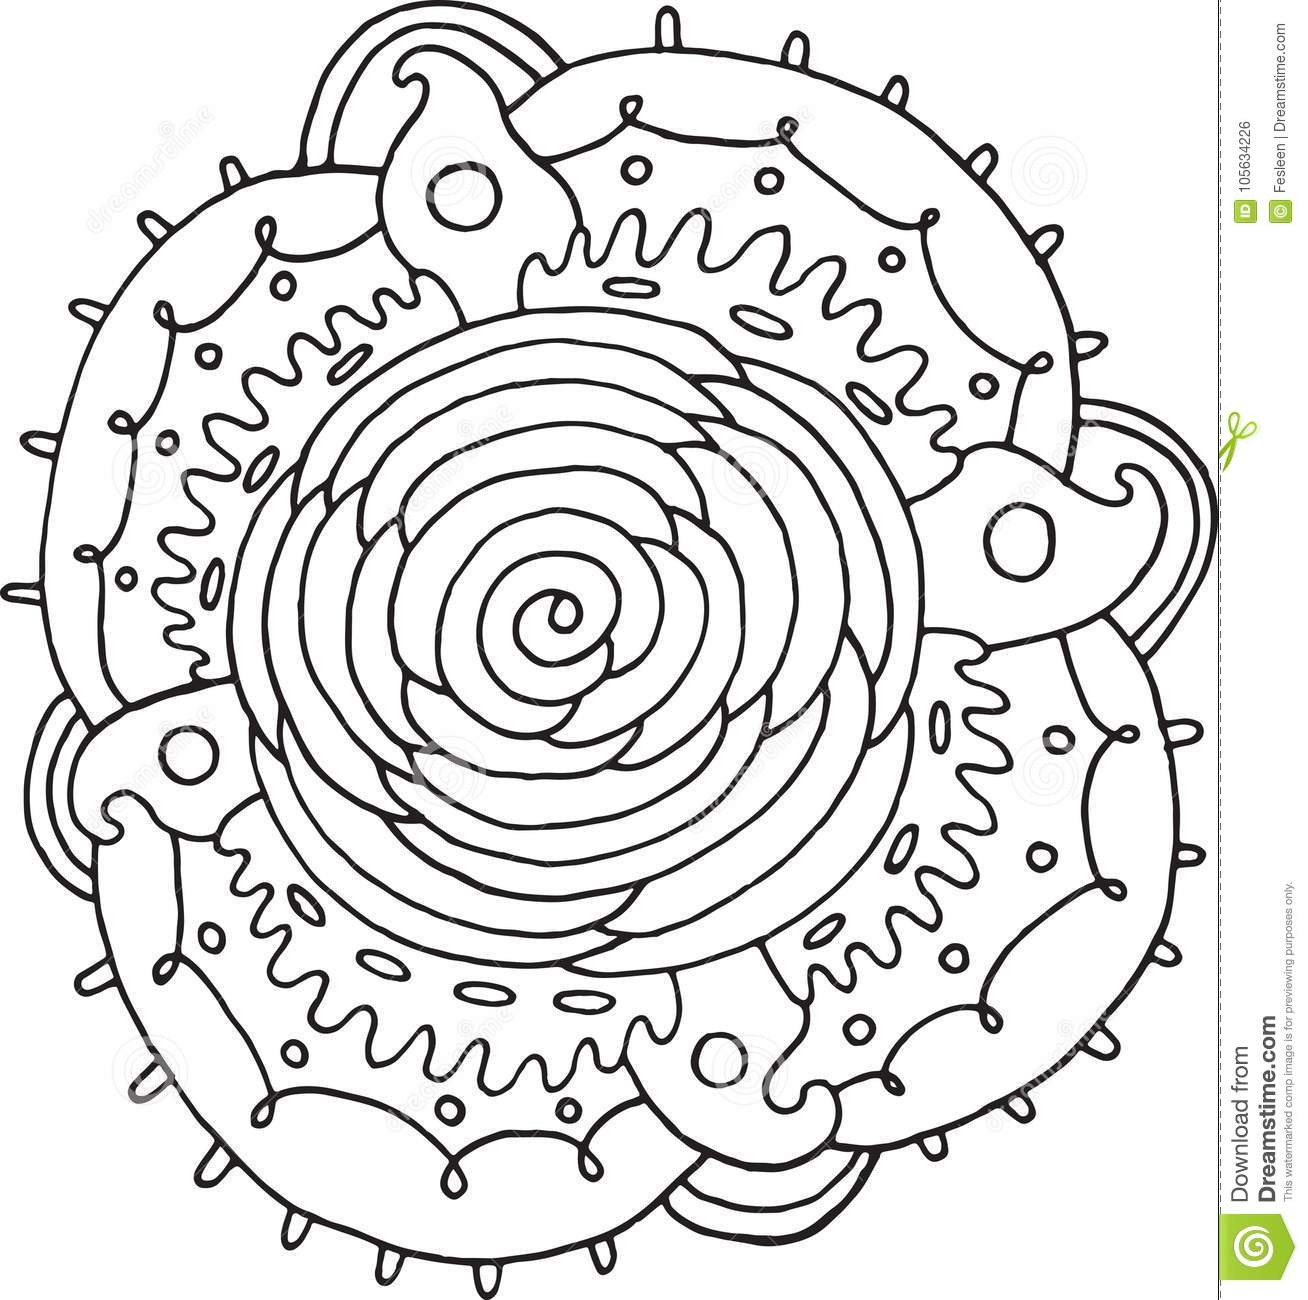 Rose Flower Mandala Doodle Coloring Page For Adults Vector Ill